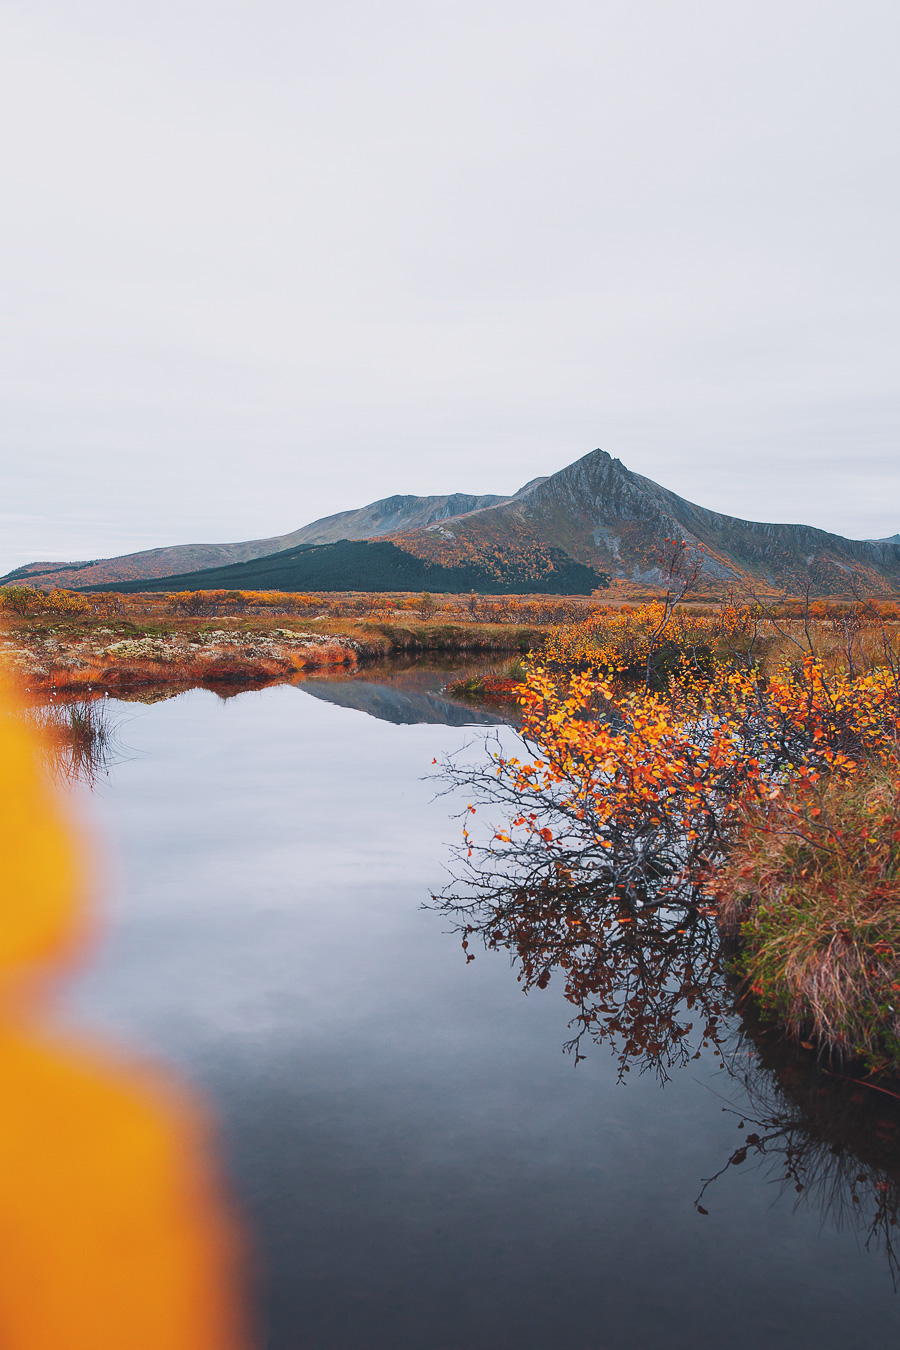 Autumn colours and a mountain reflected in water